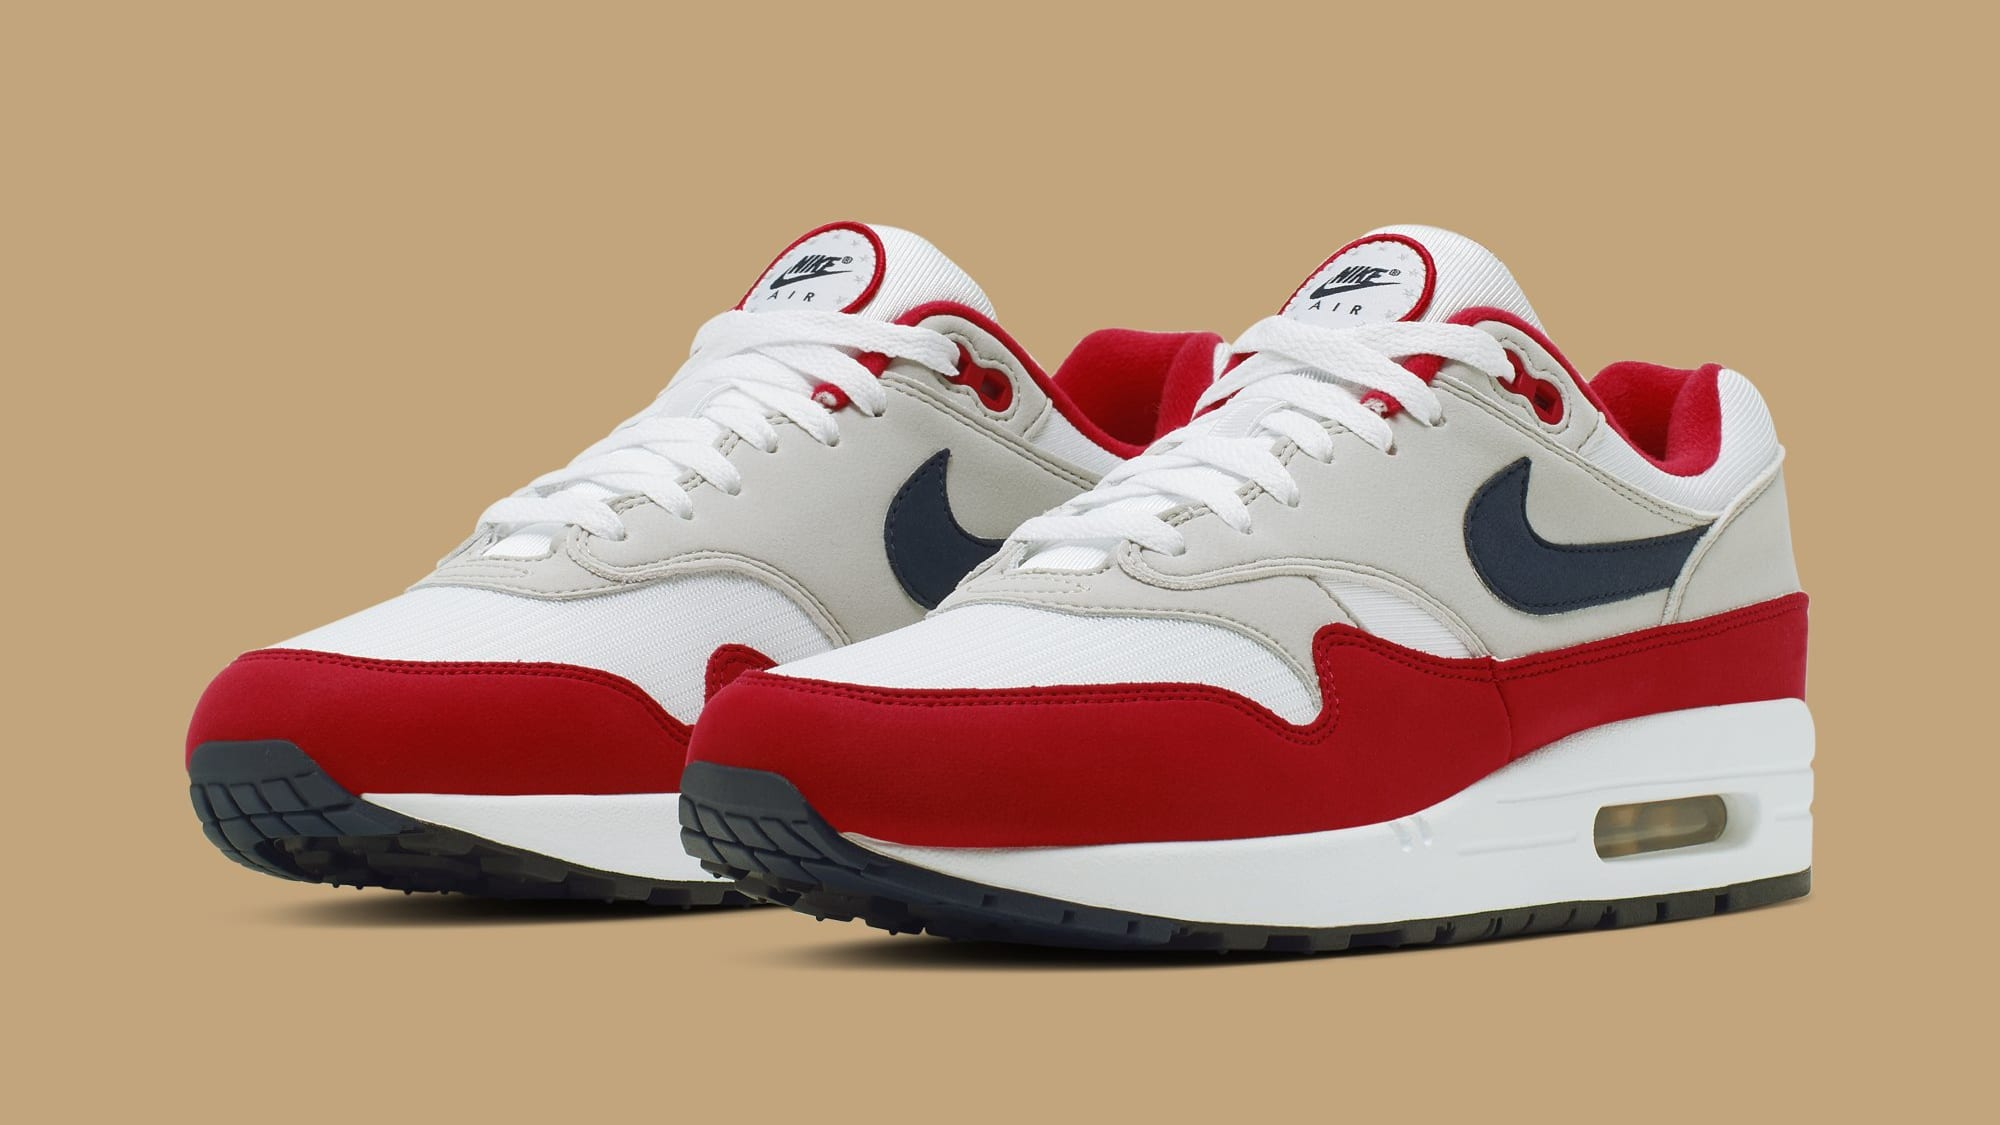 Nike Air Max 1 'Fourth of July' CJ4283-100 (Pair)